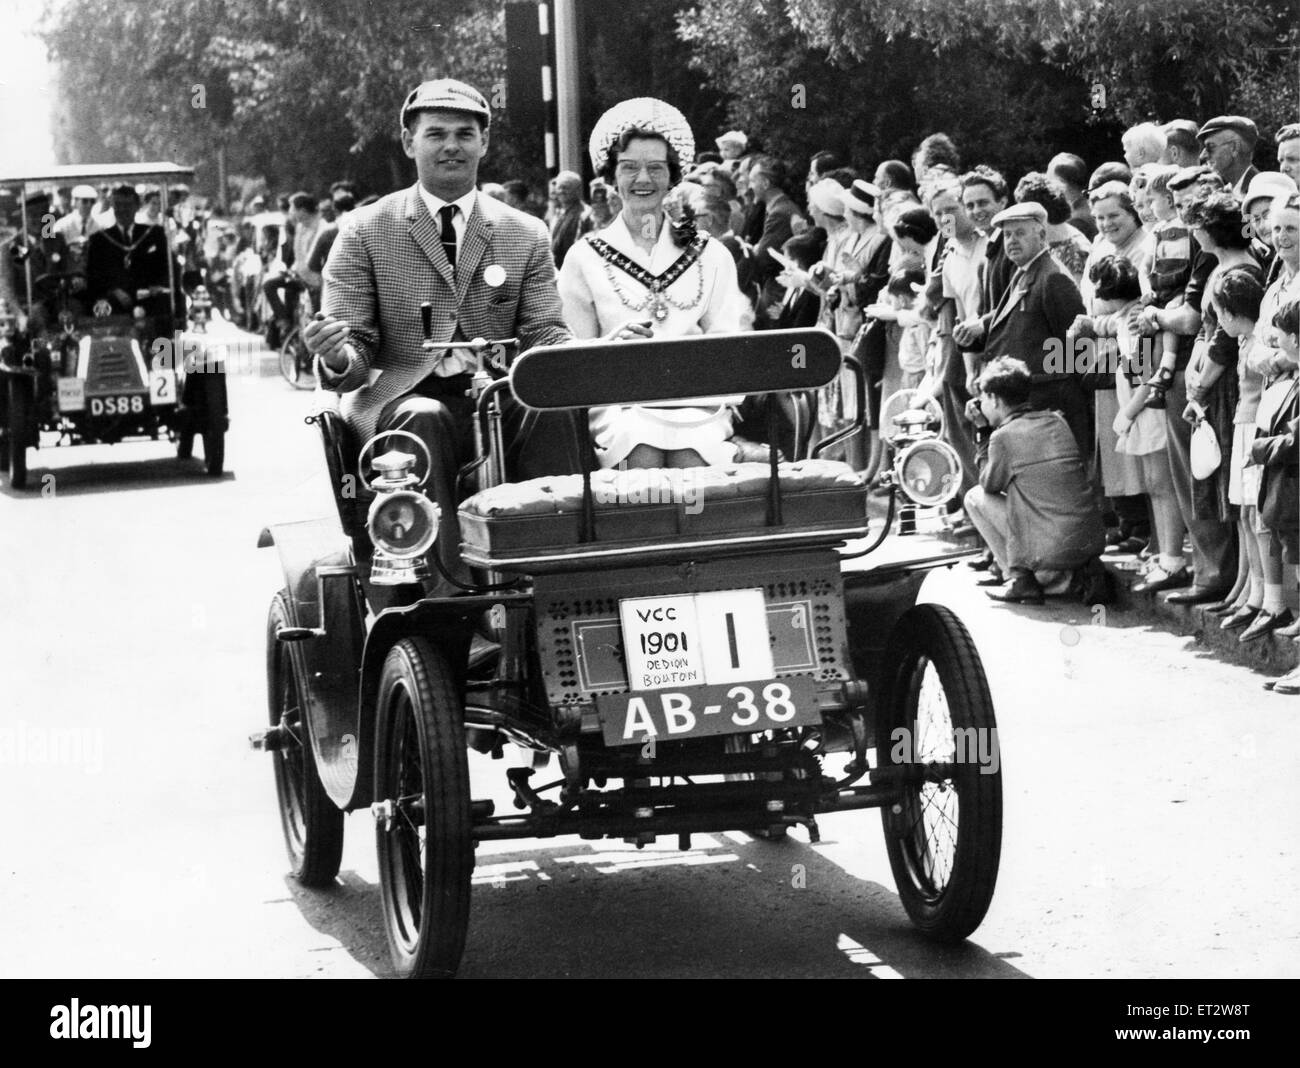 The Mayoress of Middlesbrough, Mrs E H Barrass, enjoys a ride in the leading car, a 1901 De Dion Bouton, owned by - Stock Image